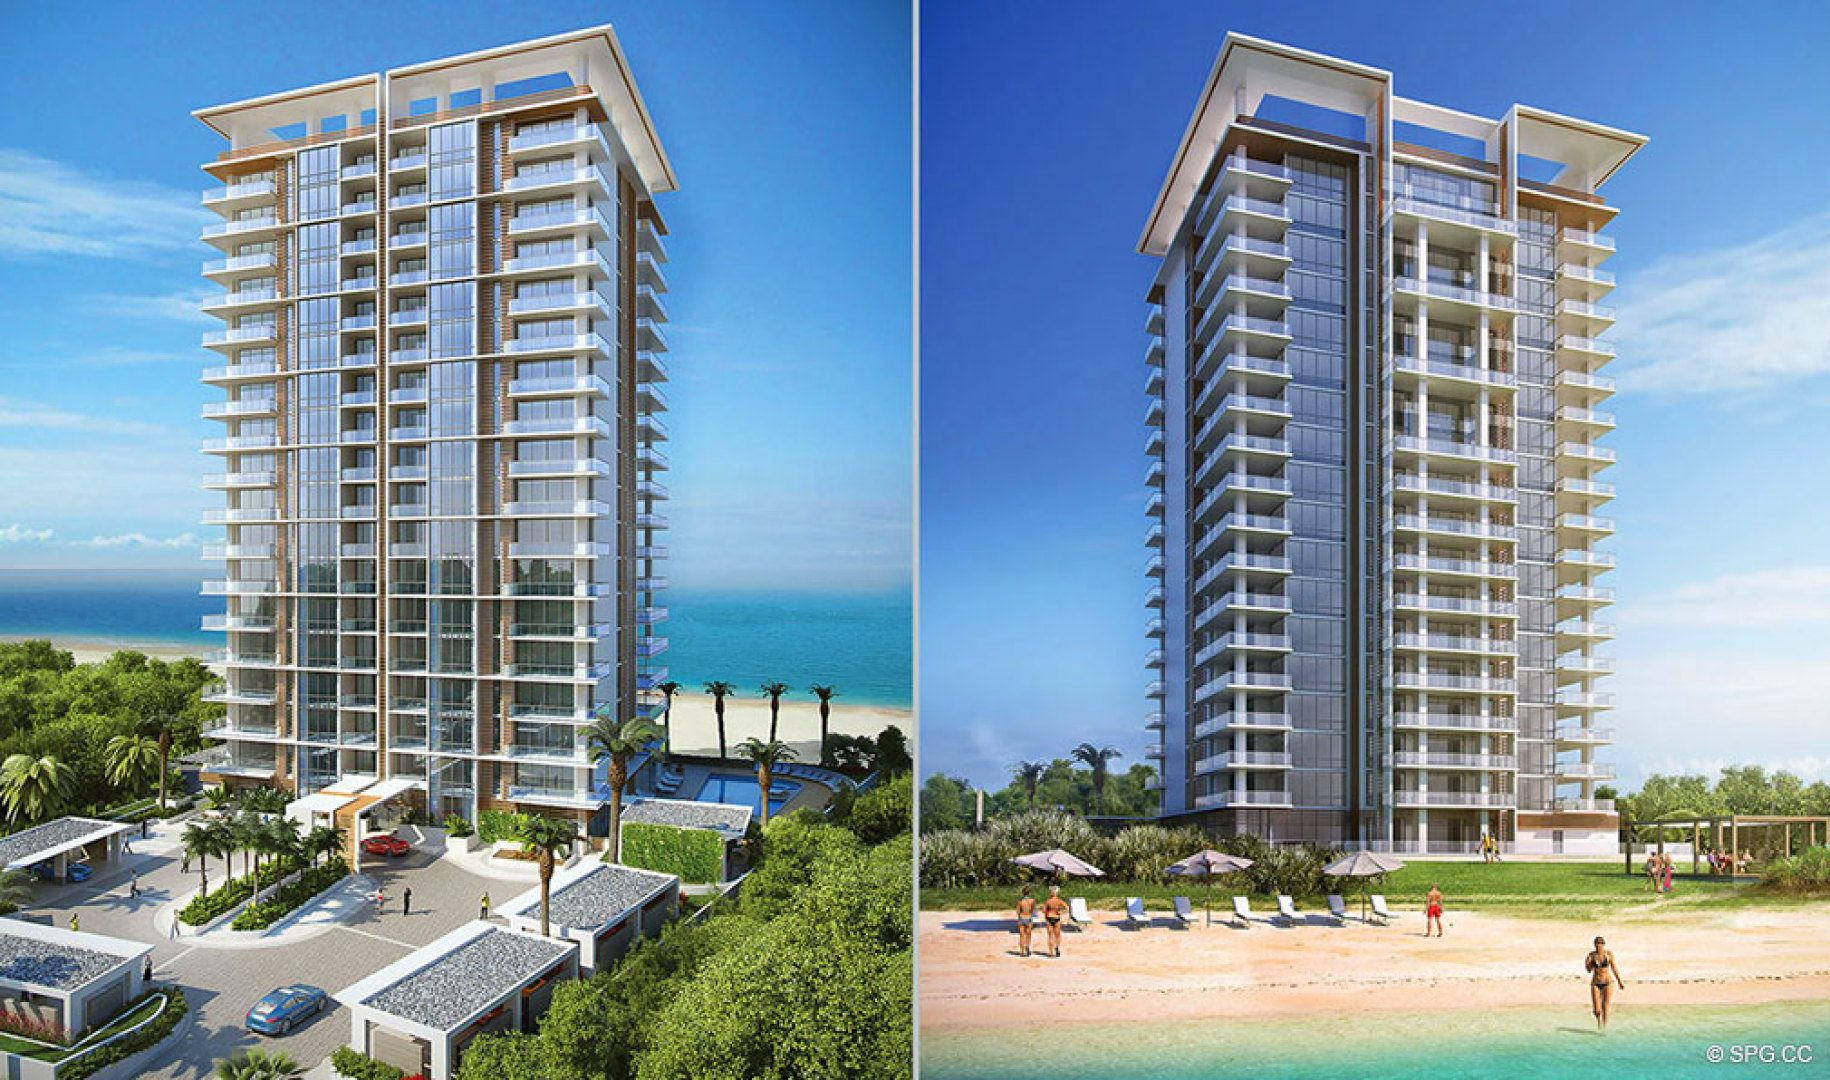 Building Facades of 5000 North Ocean, Luxury Oceanfront Condos in Riviera Beach